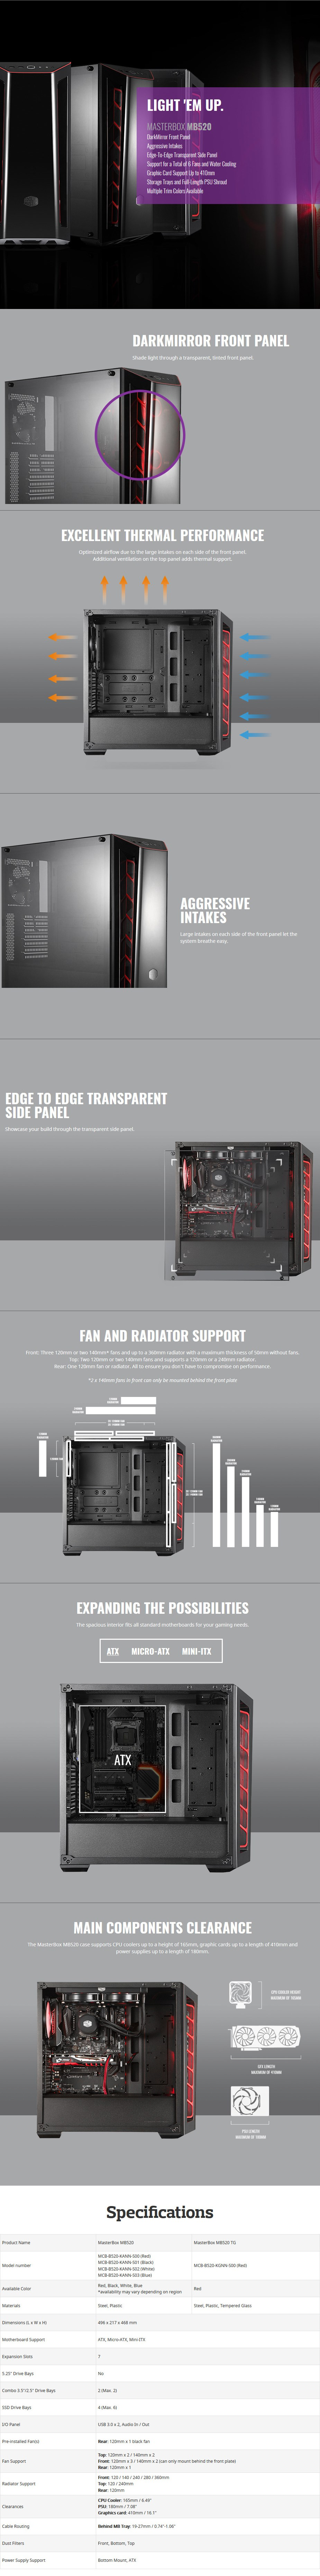 Cooler Master MasterBox MB520 Tempered Glass Mid-Tower ATX Case - Red - Desktop Overview 1